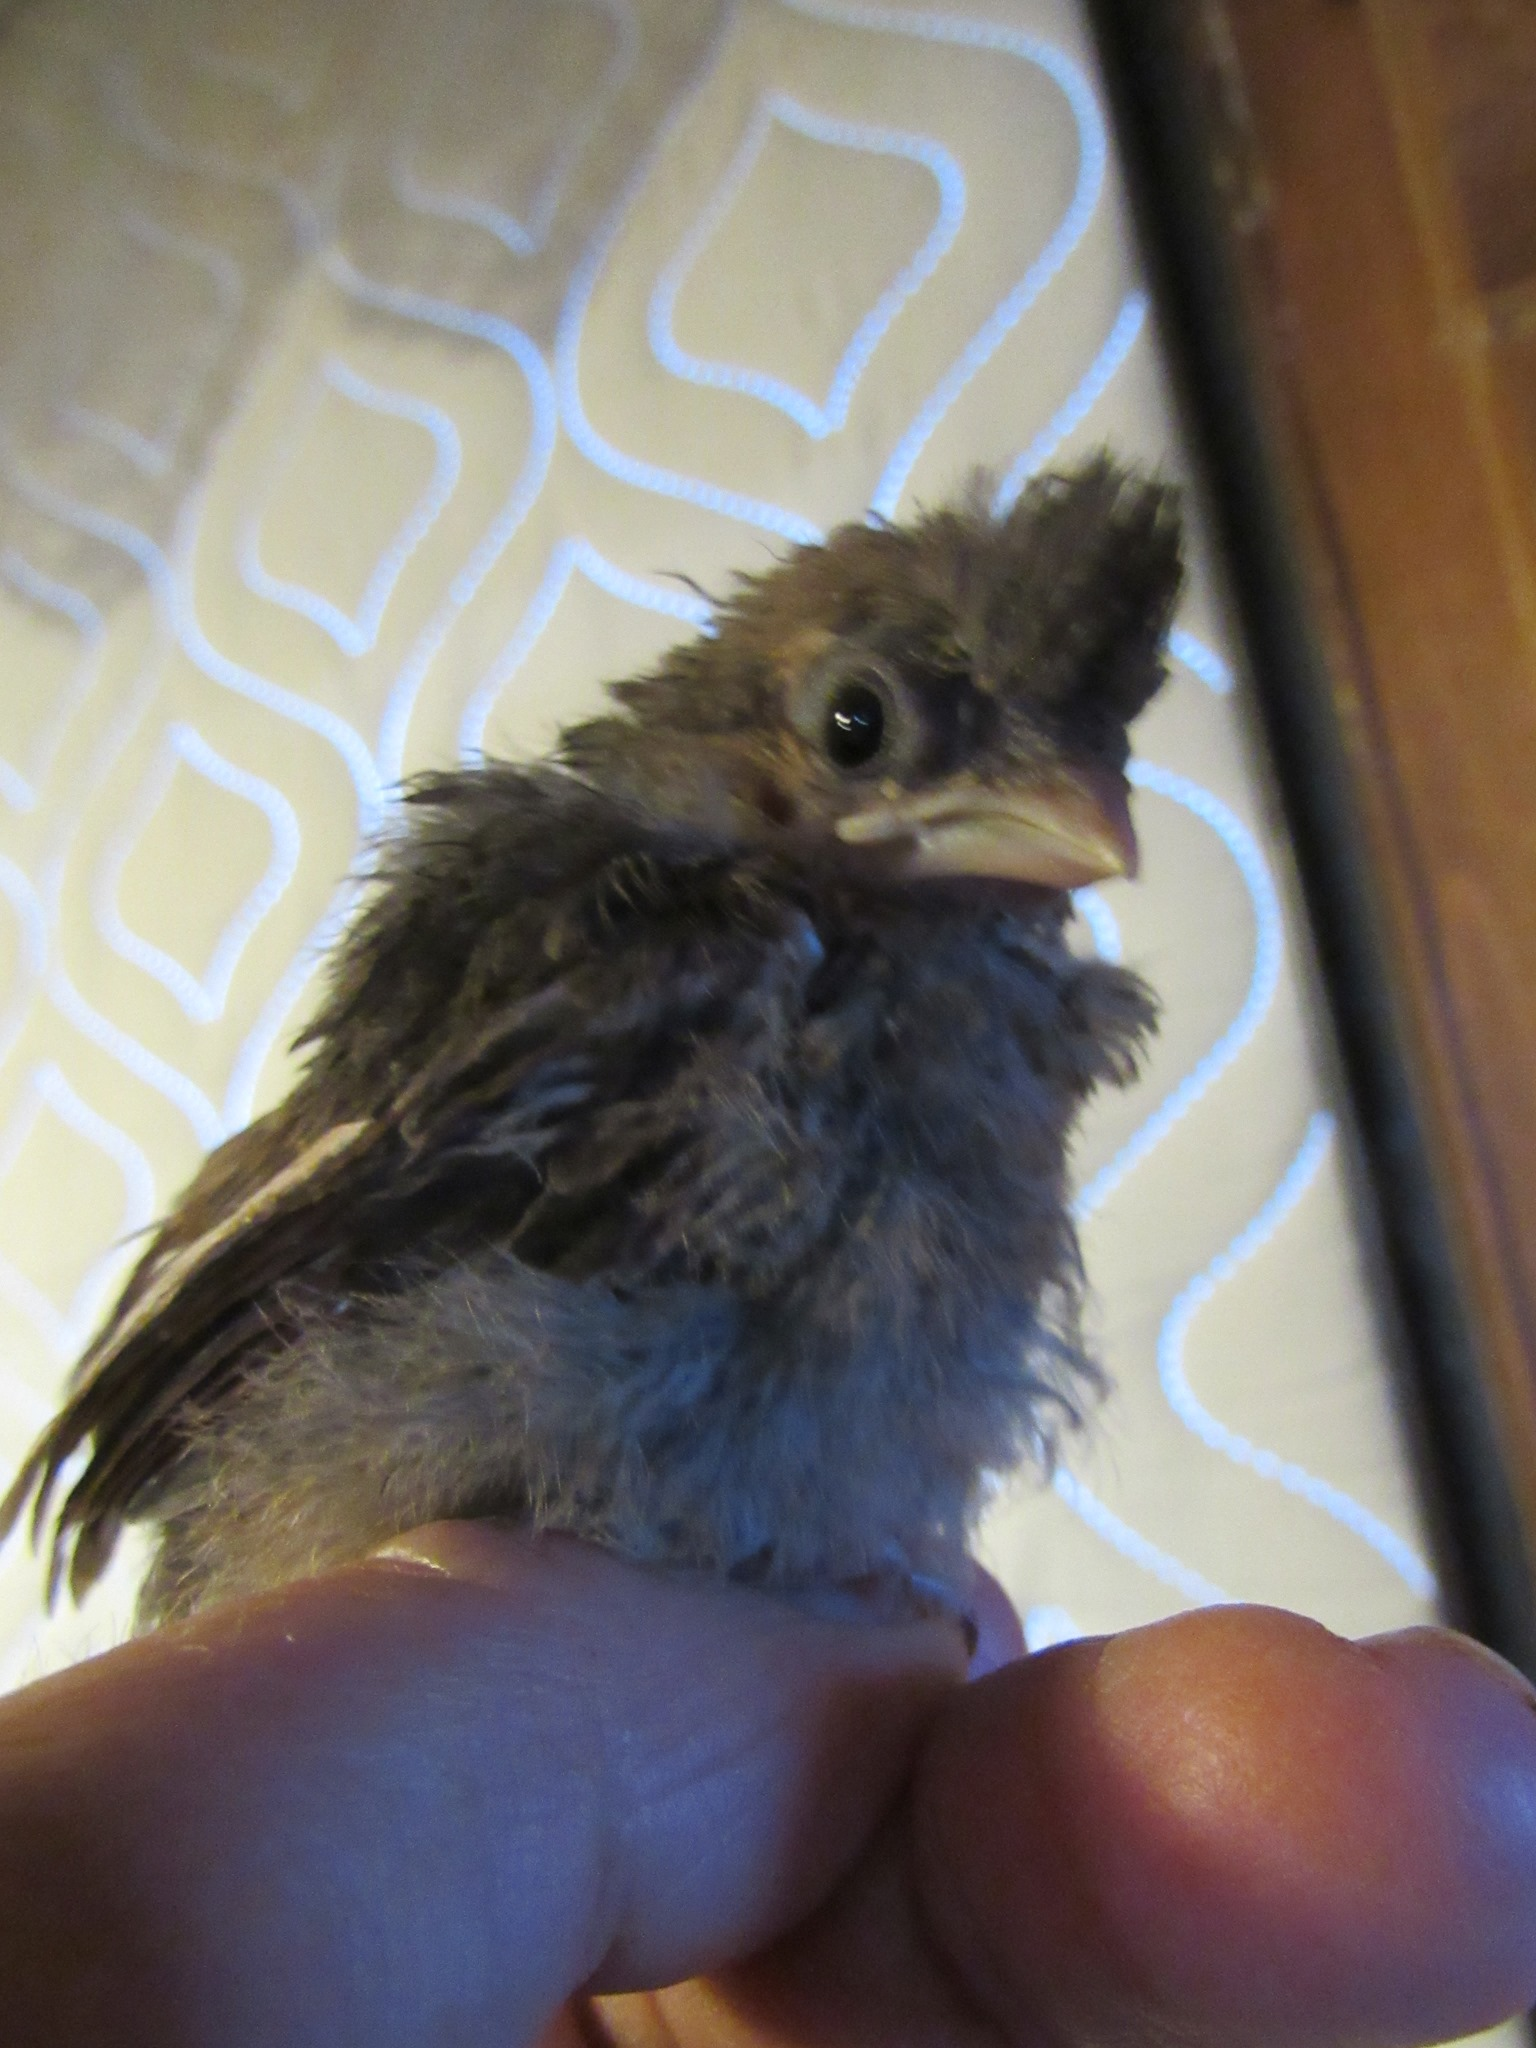 The Northern Cardinal chick already had his top notch feathers in place although his color is brown.